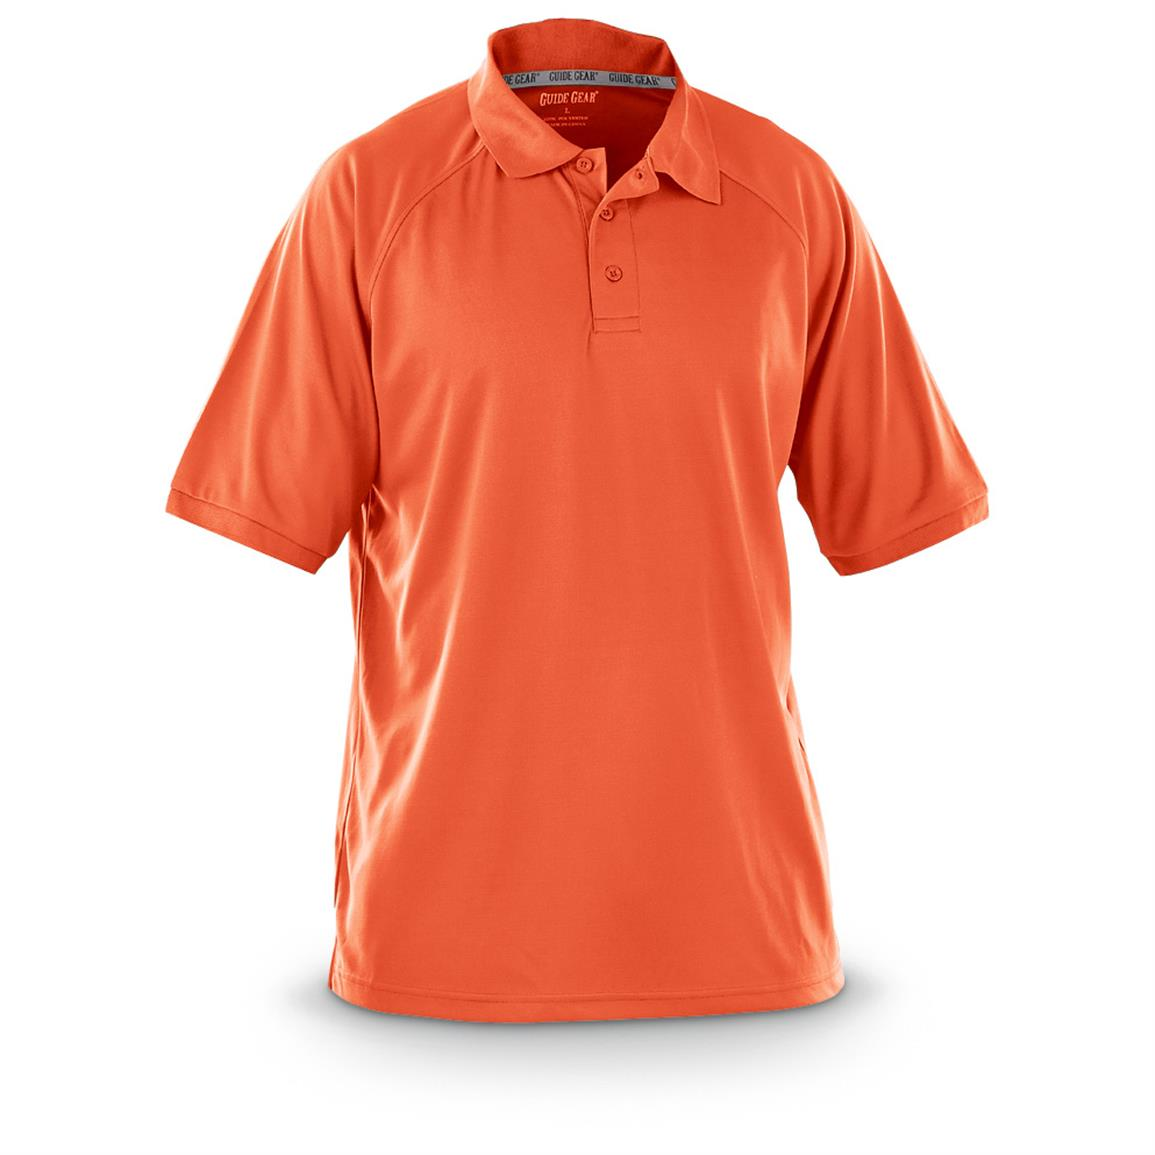 Guide Gear Men's Performance Short Sleeve Polo Shirt, Burnt Orange